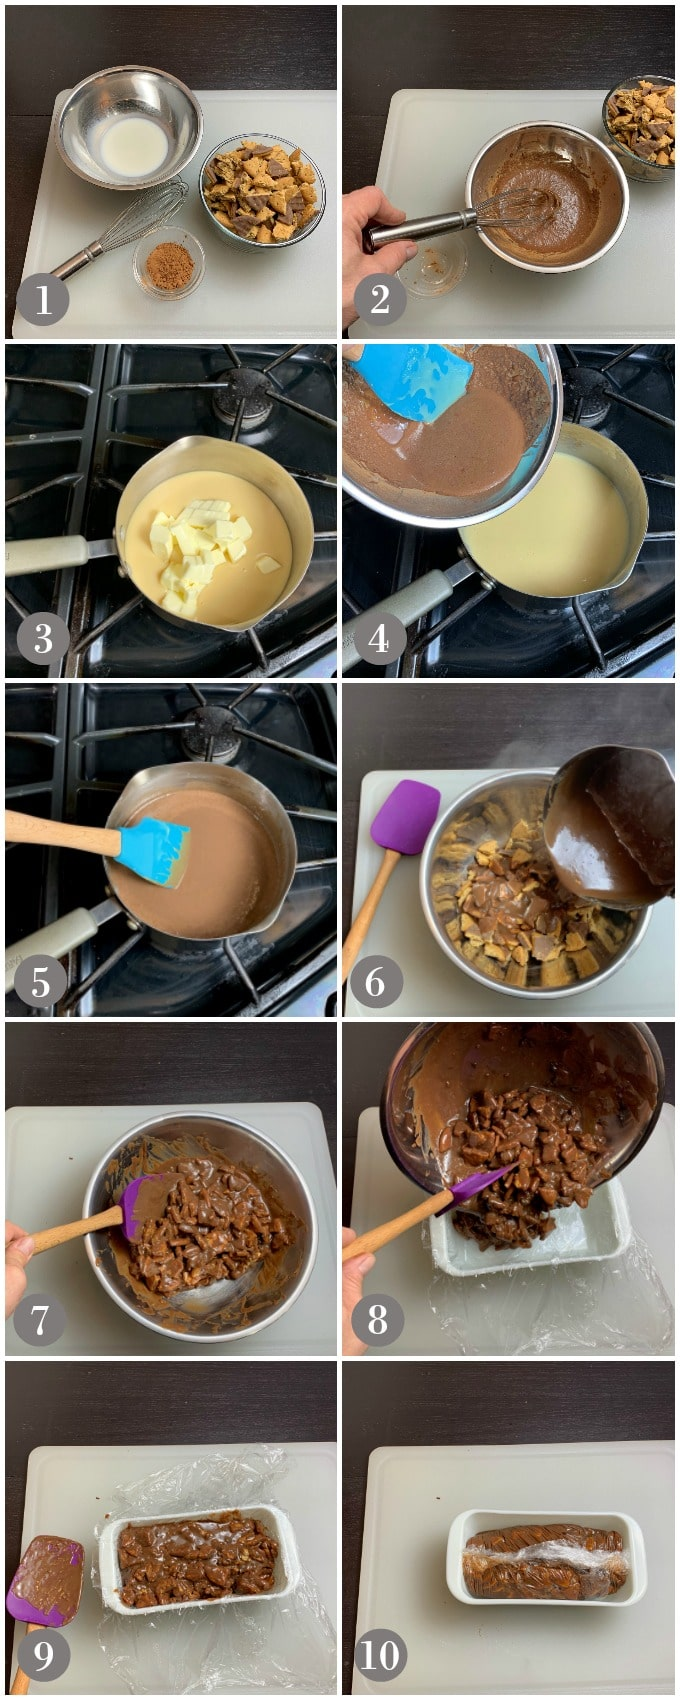 Collage of photos showing a bowl of crumbled digestive cookies and other ingredients to make tinginys cookies.